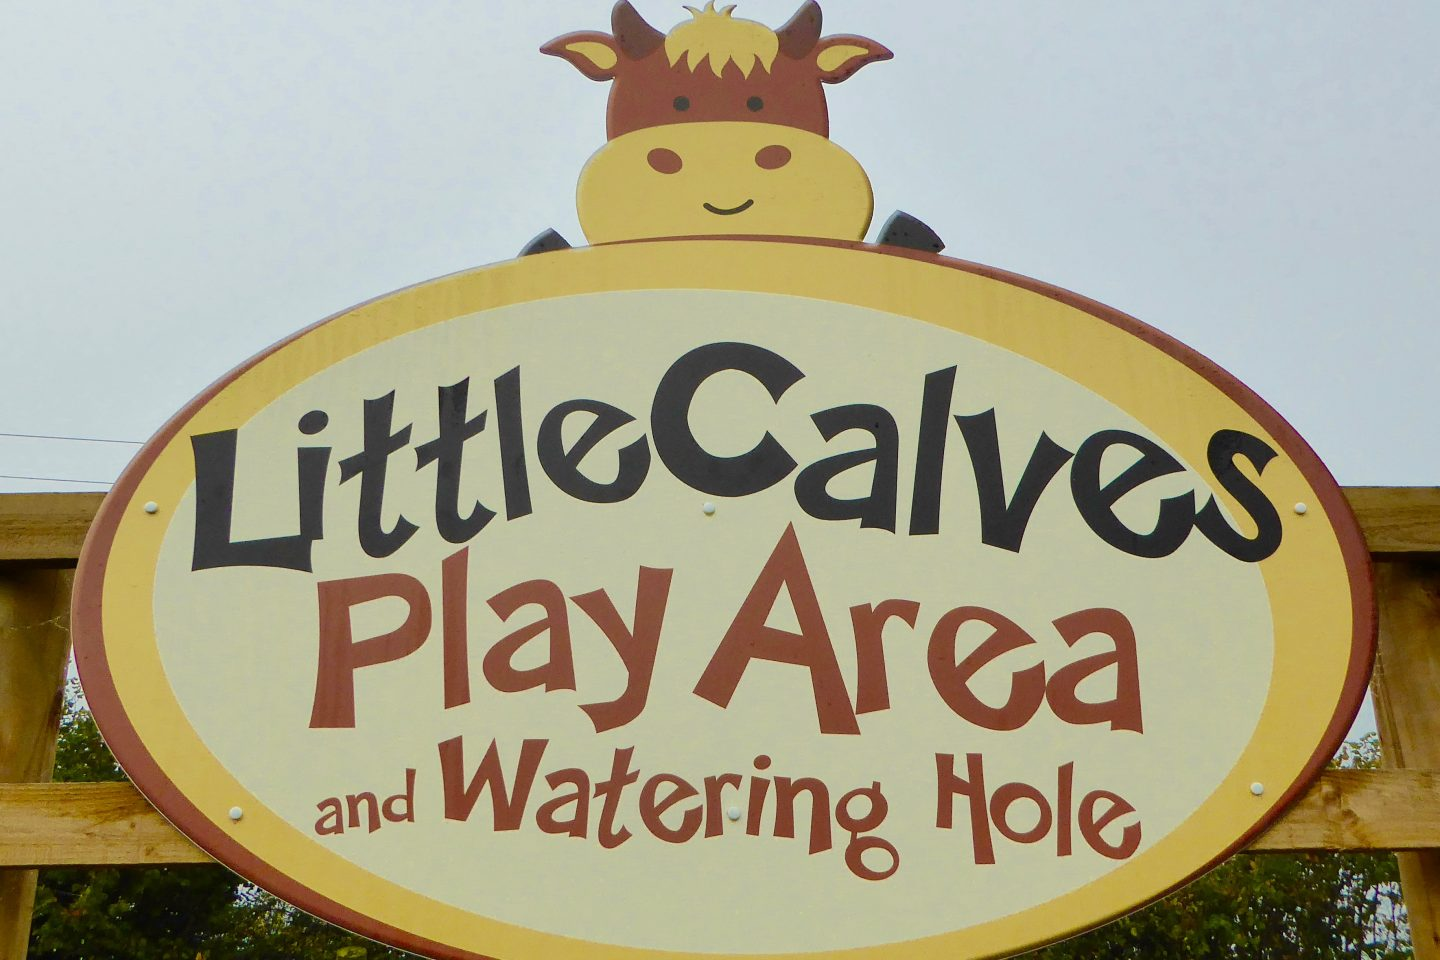 Cattle Country play area